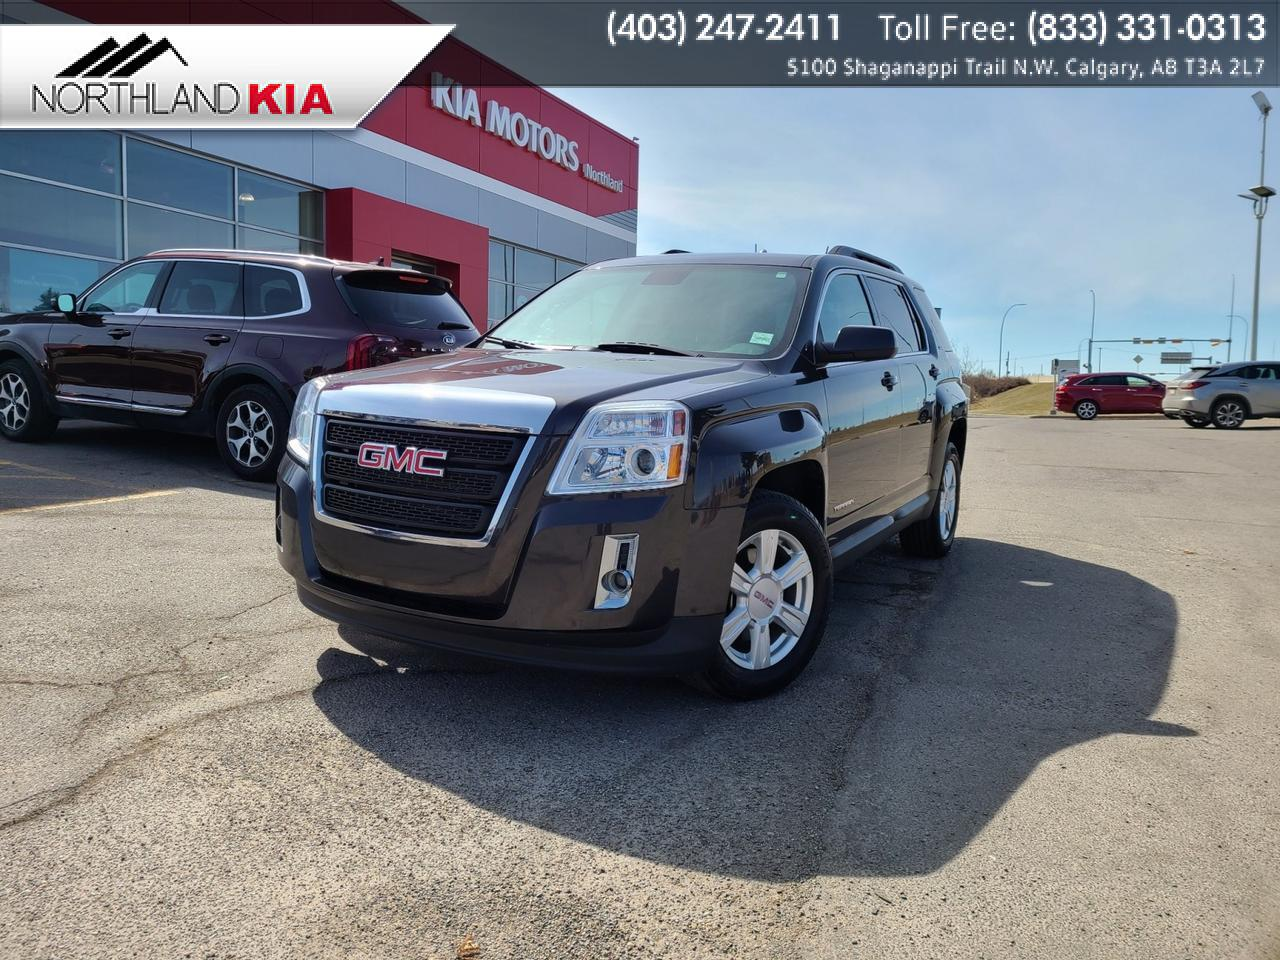 2015 GMC Terrain SLE ALL-WHEEL DRIVE, SUNROOF, HEATED SEATS, BACKUP CAMERA Calgary AB